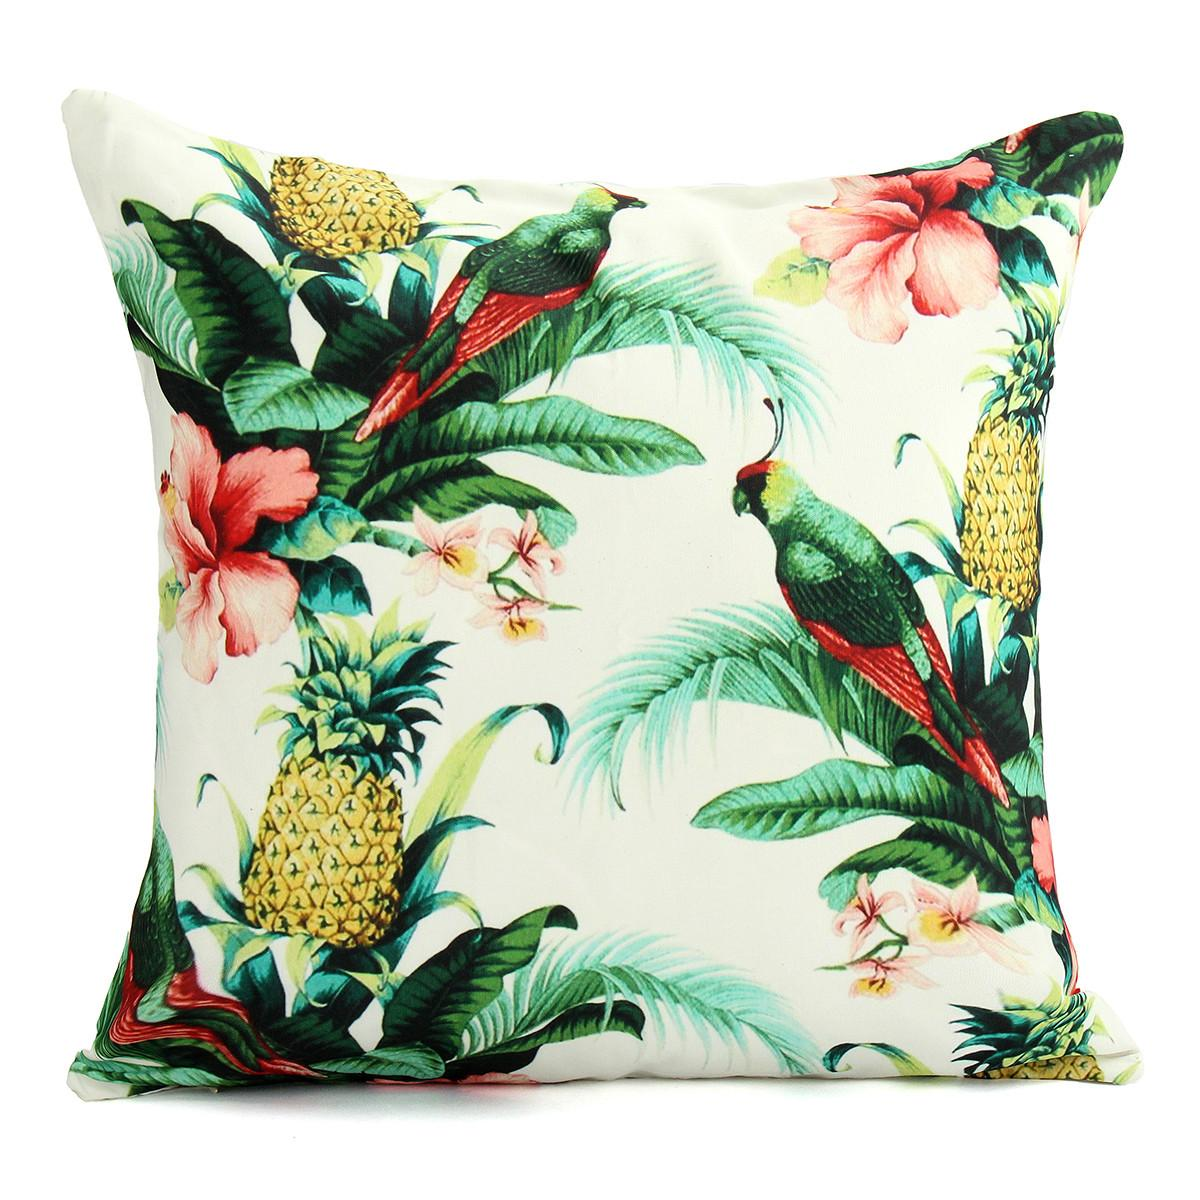 Pineapple Parrot Canvas Chair Cushion Cover